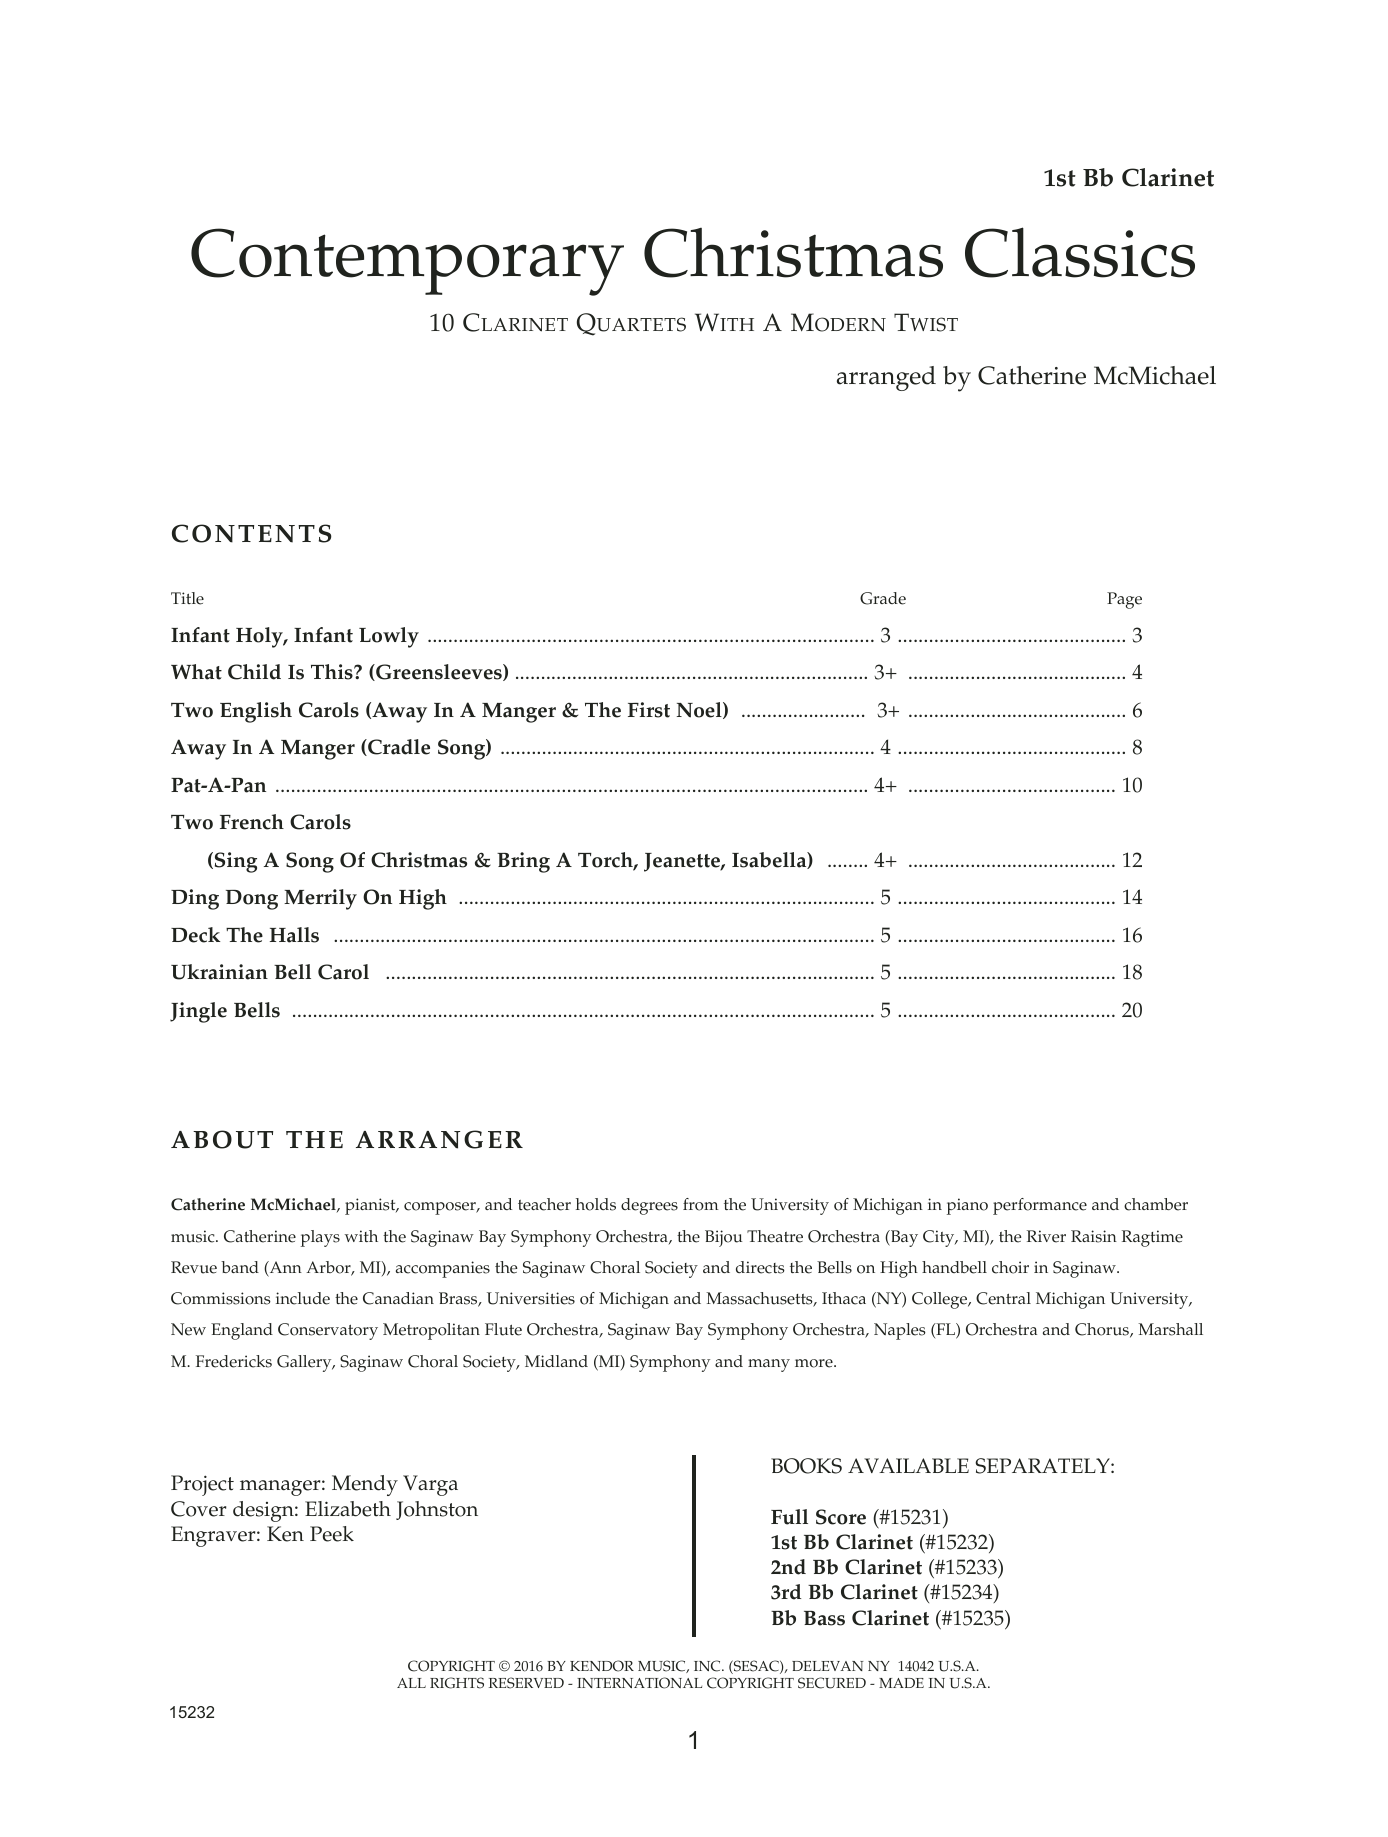 Contemporary Christmas Classics - 1st Bb Clarinet Sheet Music